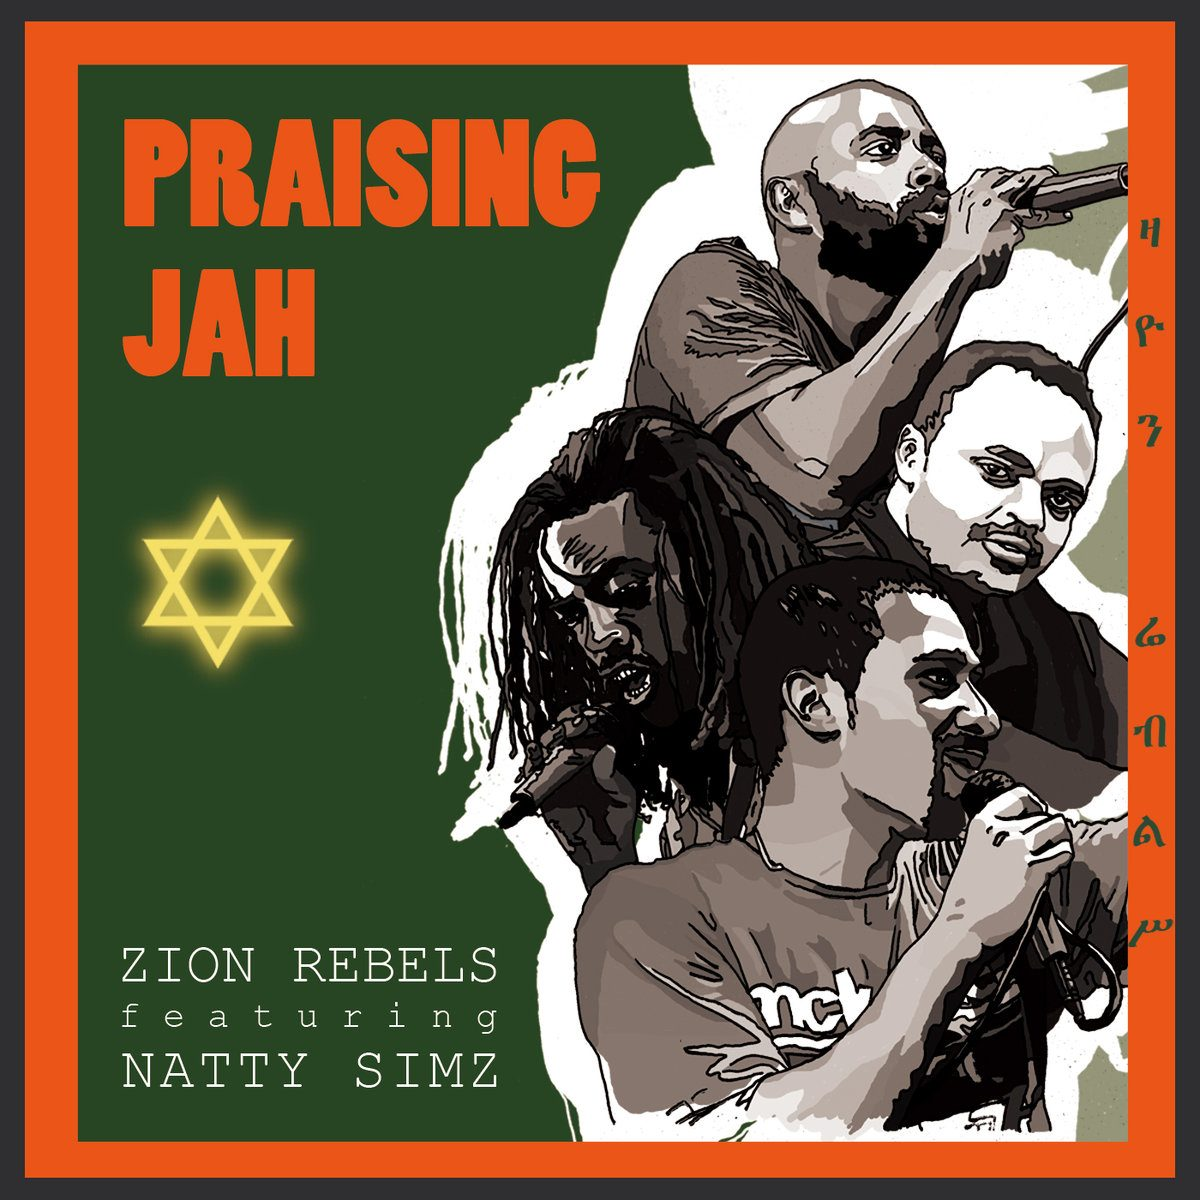 Zion Rebels - Praising Jah (feat. Natty Simz) (Digital)